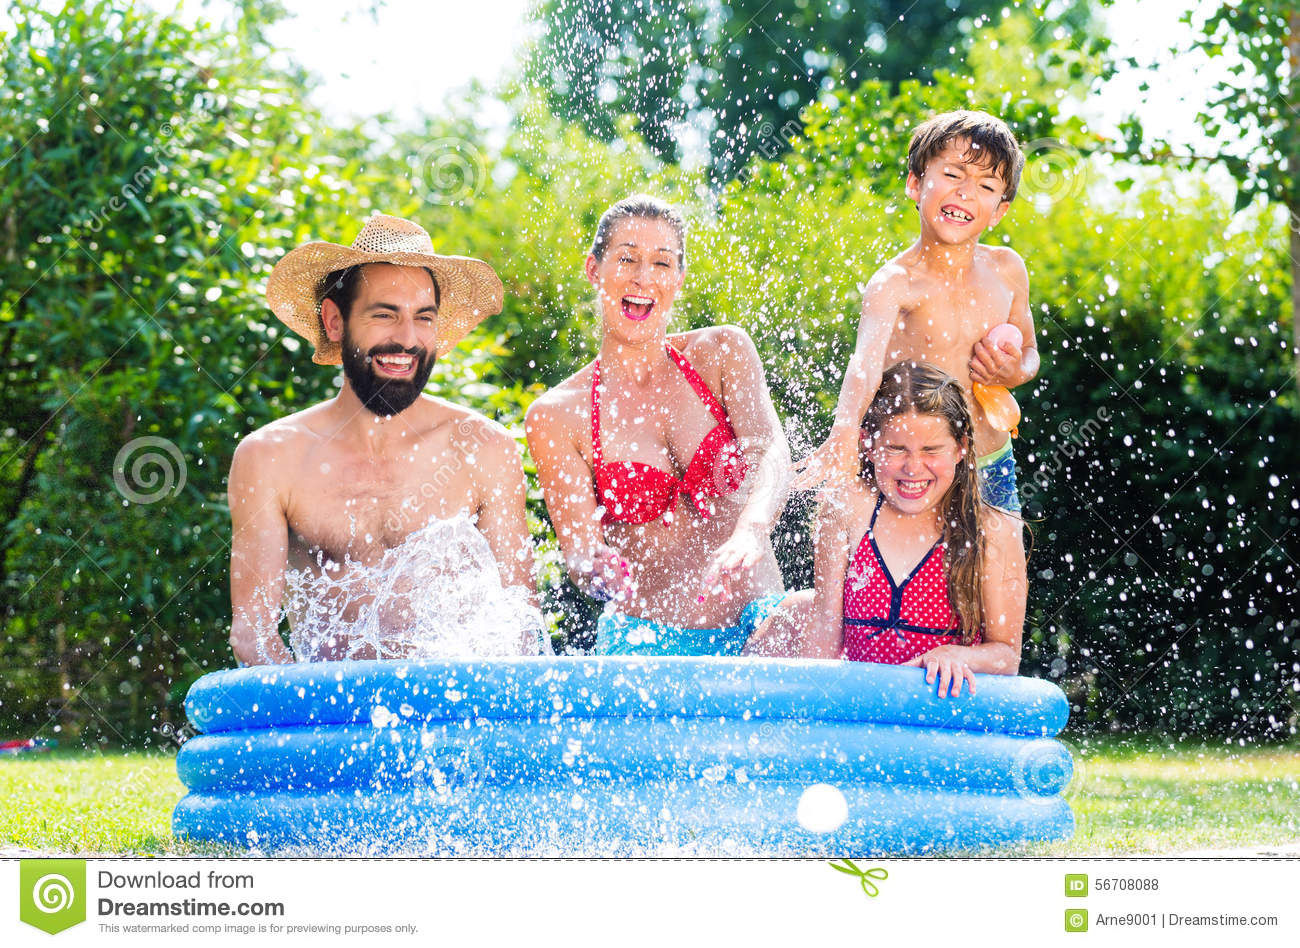 family-garden-pool-cooling-down-splashing-water-56708088.jpg